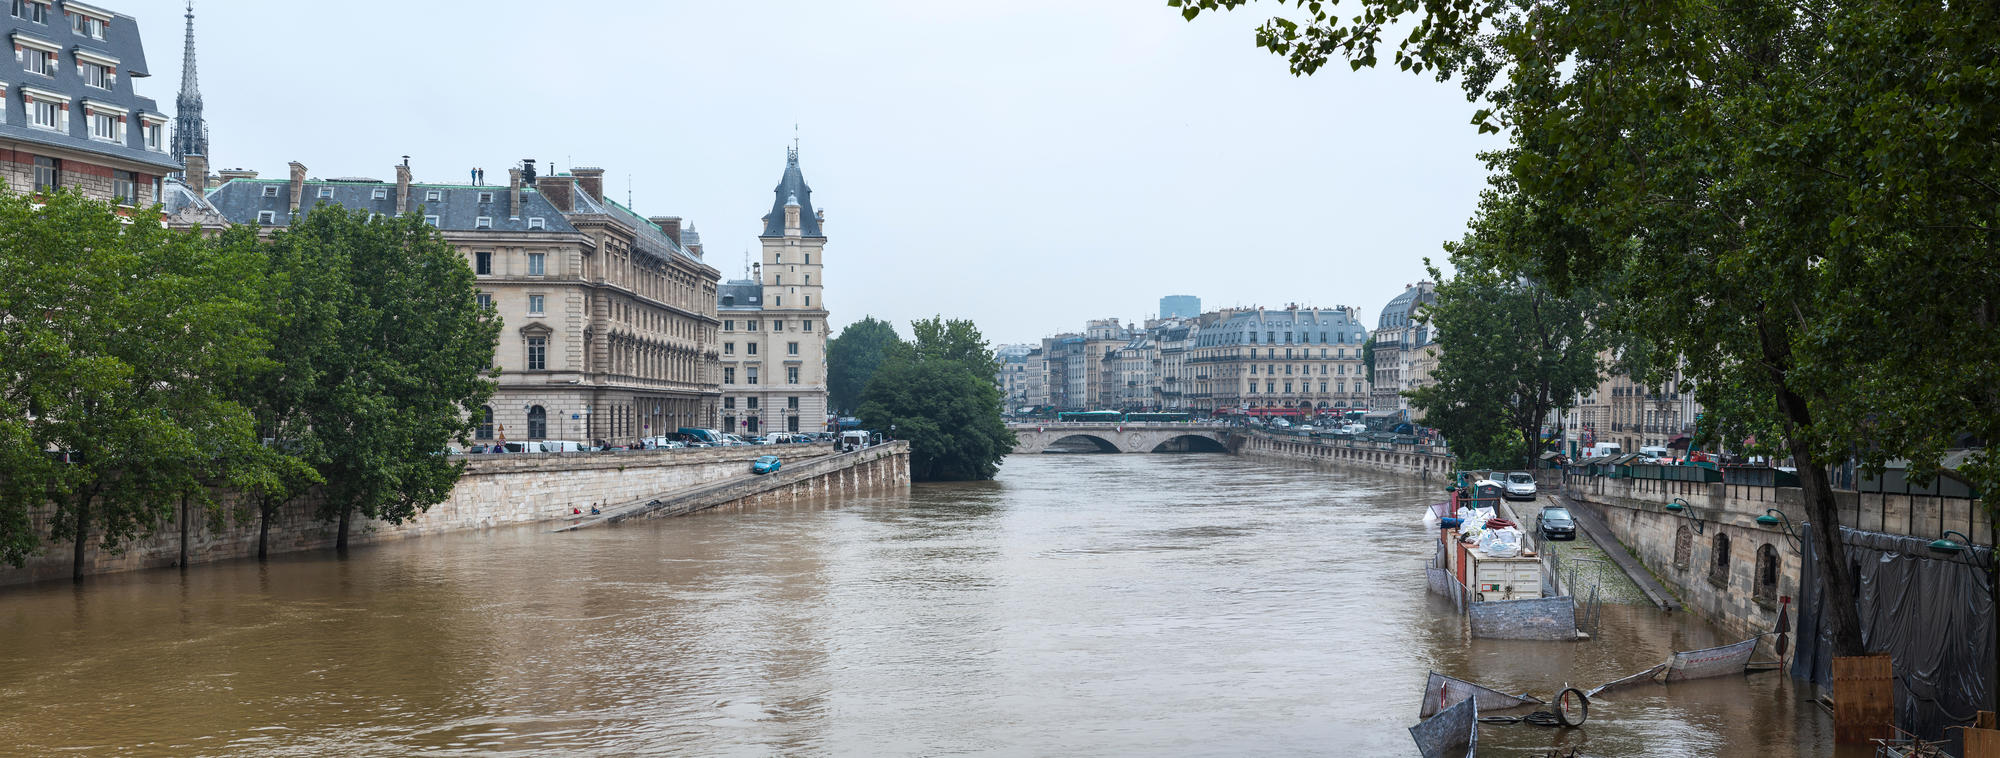 Crue à Paris en 2016